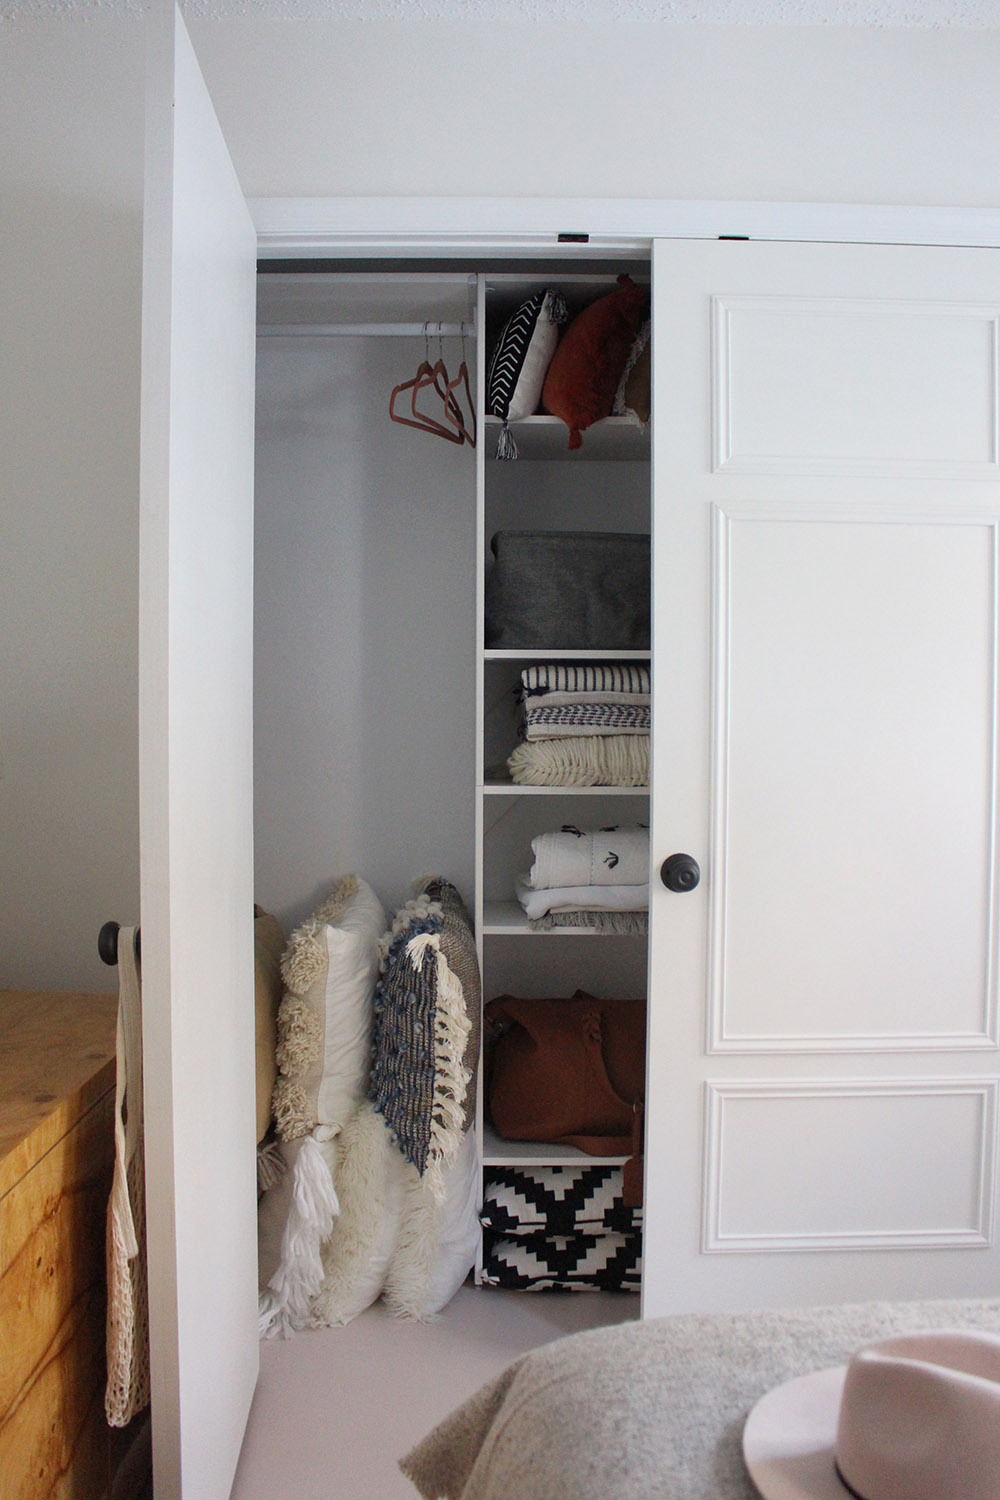 The other closet door open with an area for hanging clothes.